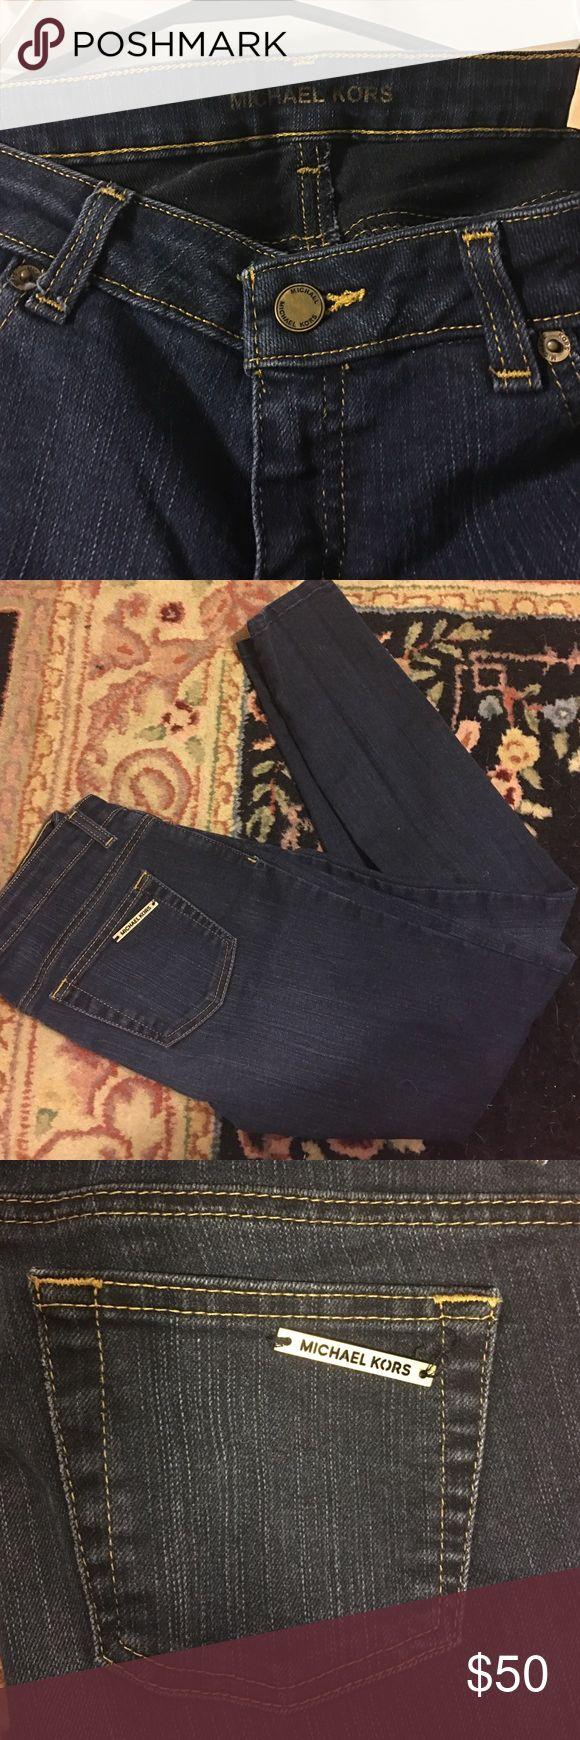 😱Michael Kors beautiful Dark Wash skinny jeans 4 Michael Kors!! Gorgeous dark blue denim almost an indigo color. Only been worn 3 total times. Purchased about a year ago. Size 4 runs a little bit small imo but still has a good stretch Michael Kors Jeans Skinny